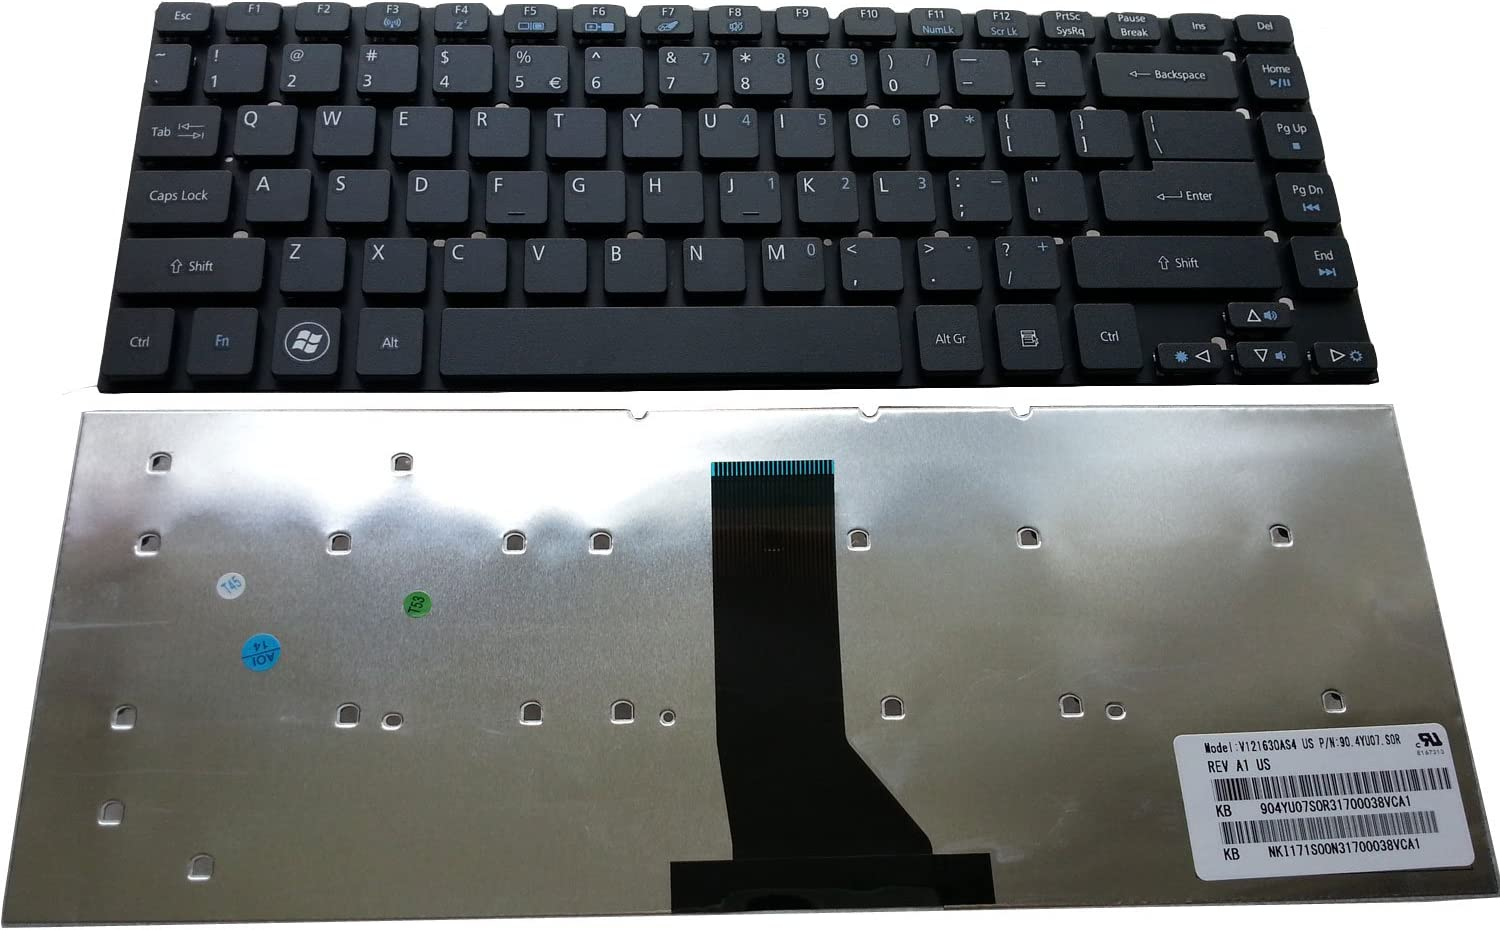 Notebook Keyboard for Acer Aspire ES1-511 E5-411 E5-471 E1-470 E1-432 V3-472 E1-422 3830 4830 4755 E1-472 E1-410 ES1-411 E1-430 E5-421 ES1-421 ES1-431 V3-431 V3-471 US Black keypad